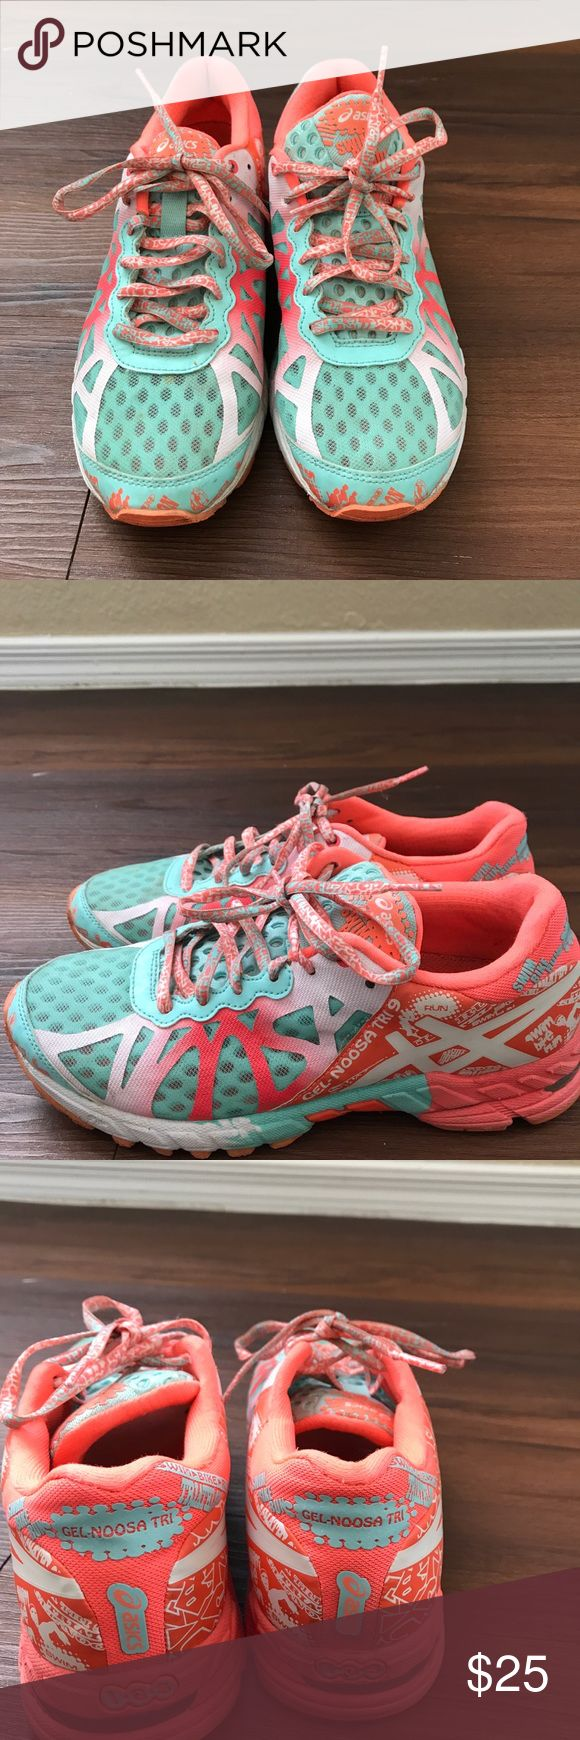 Womens asics gel-noosa tri 9 size 7 orange/blue Womens asics. Size 7. Have been worn a but but in good condition. Turquoise and coral colored. Lace up sneaker. Gel - noosa tri 9 Asics Shoes Athletic Shoes